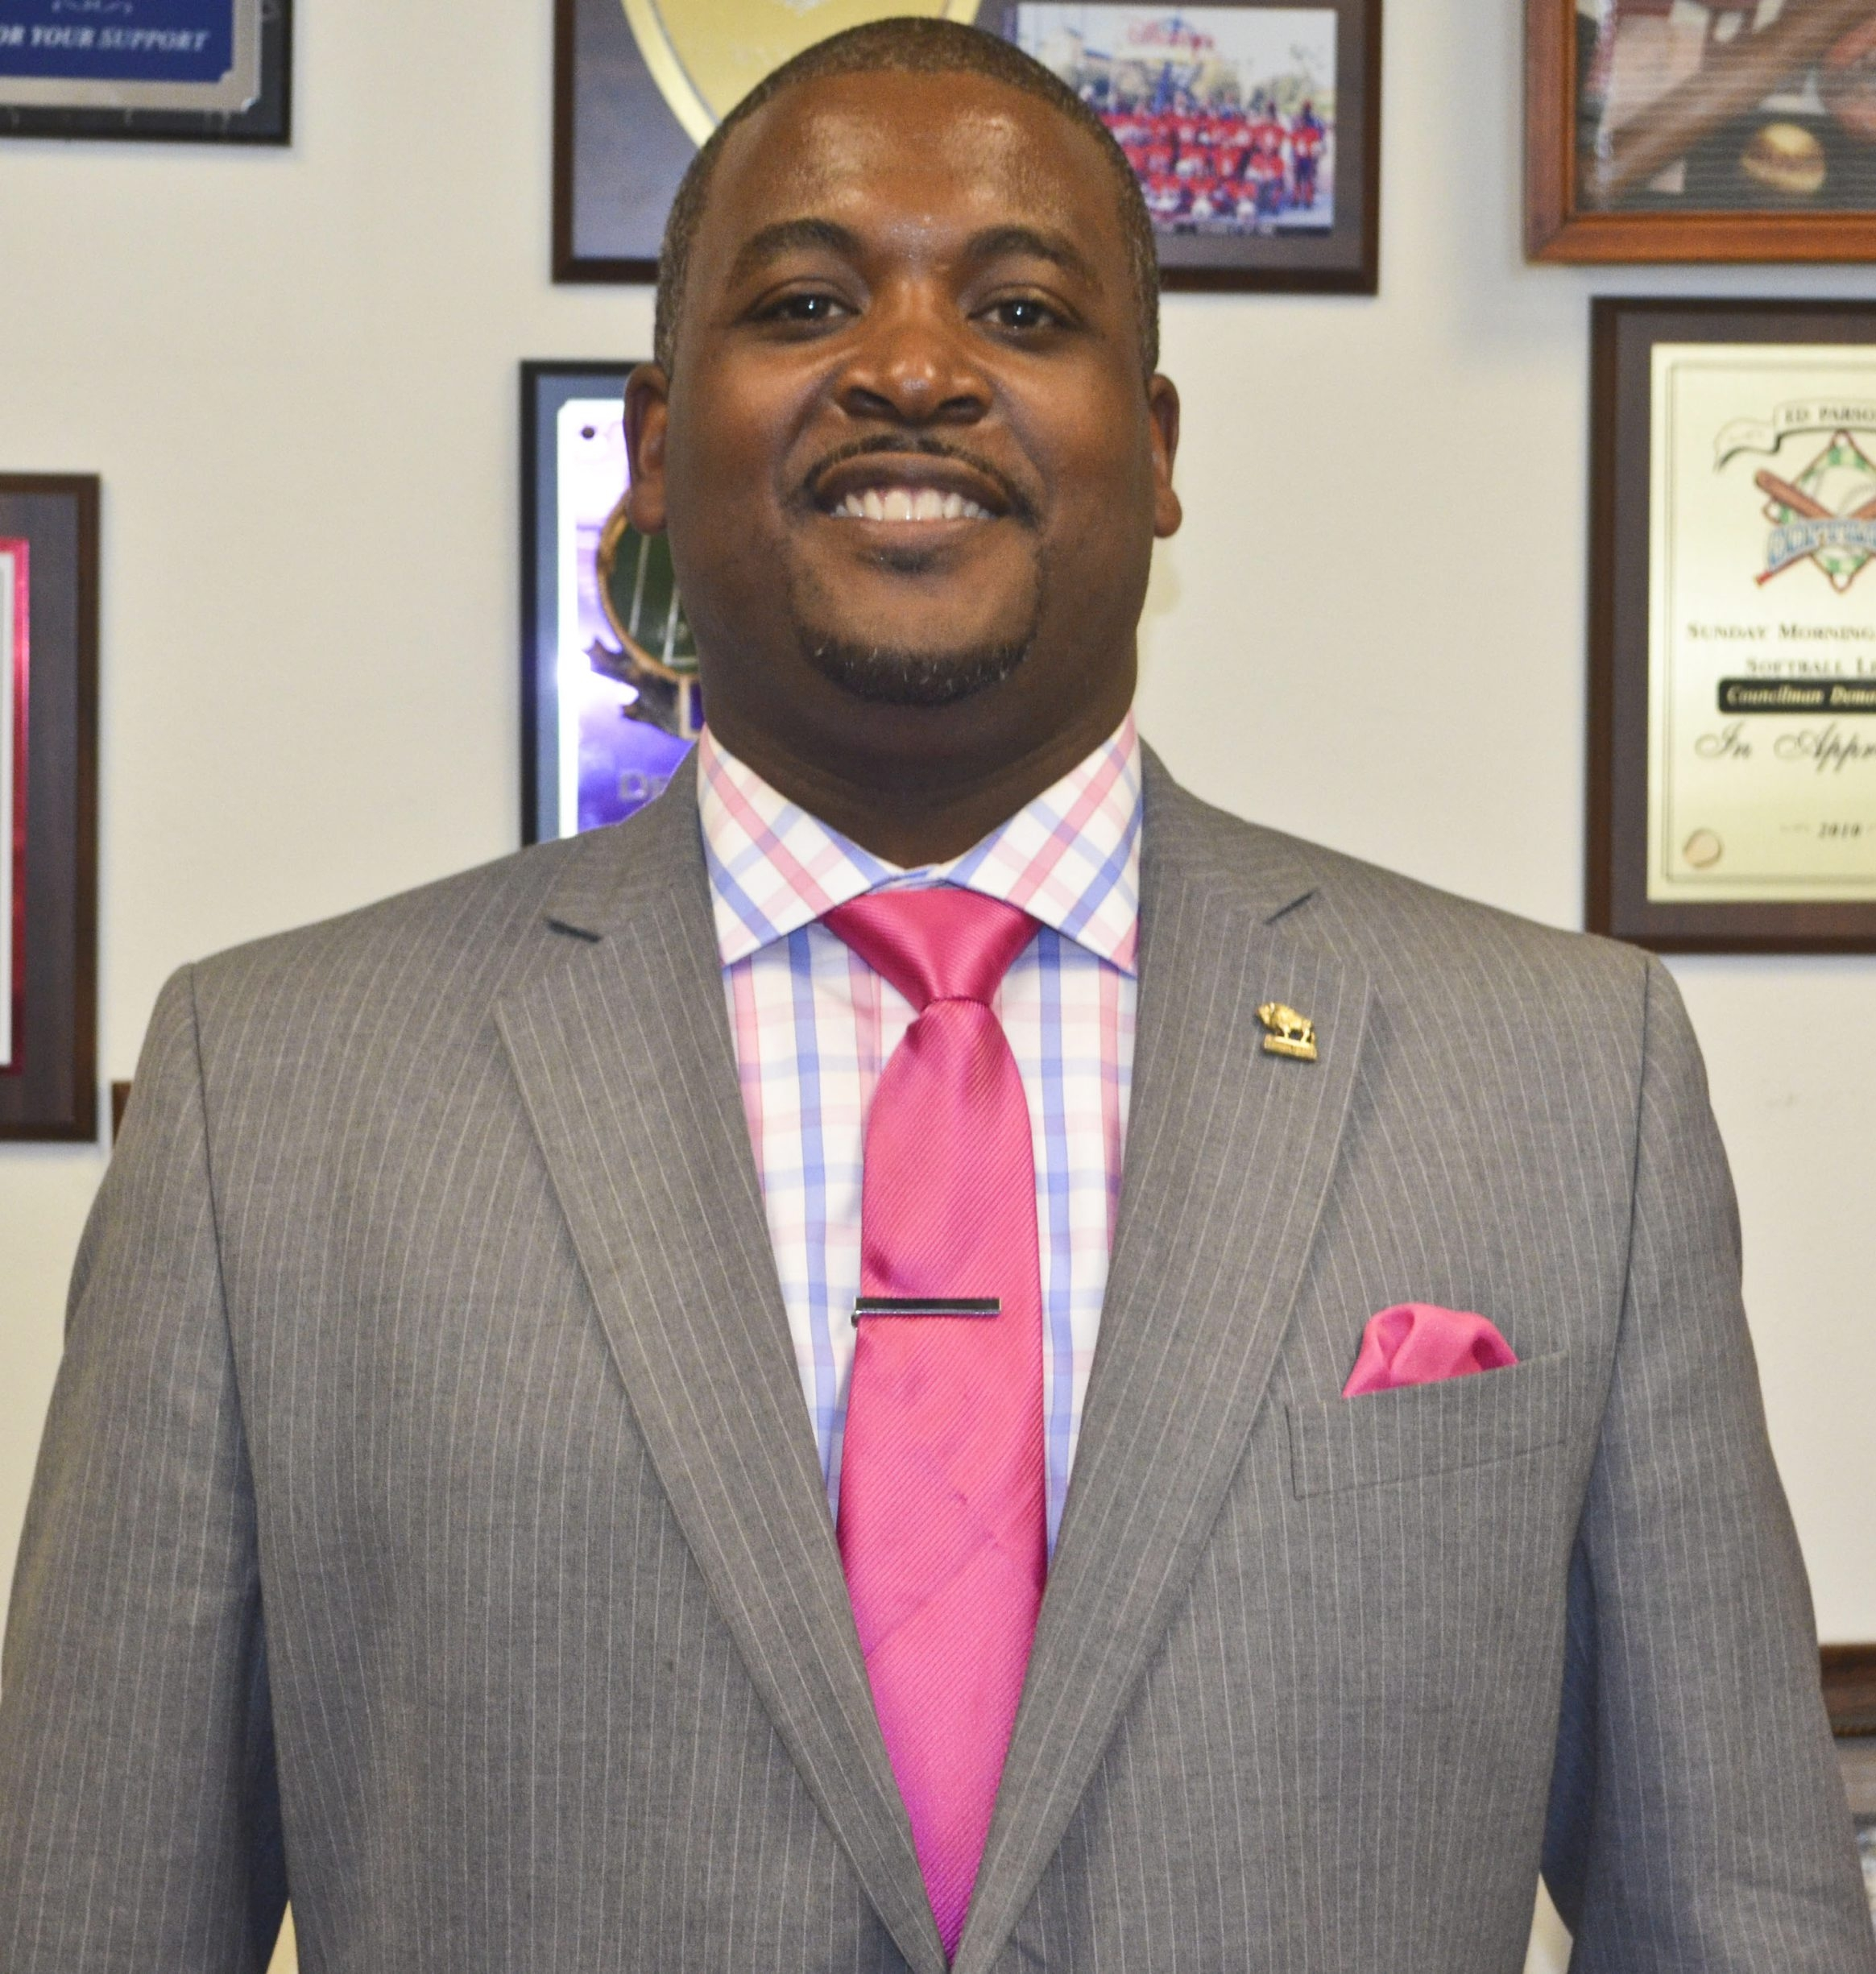 Demone A. Smith, who rep- resented Masten District on Council, to lead city Employ- ment & Training Center.